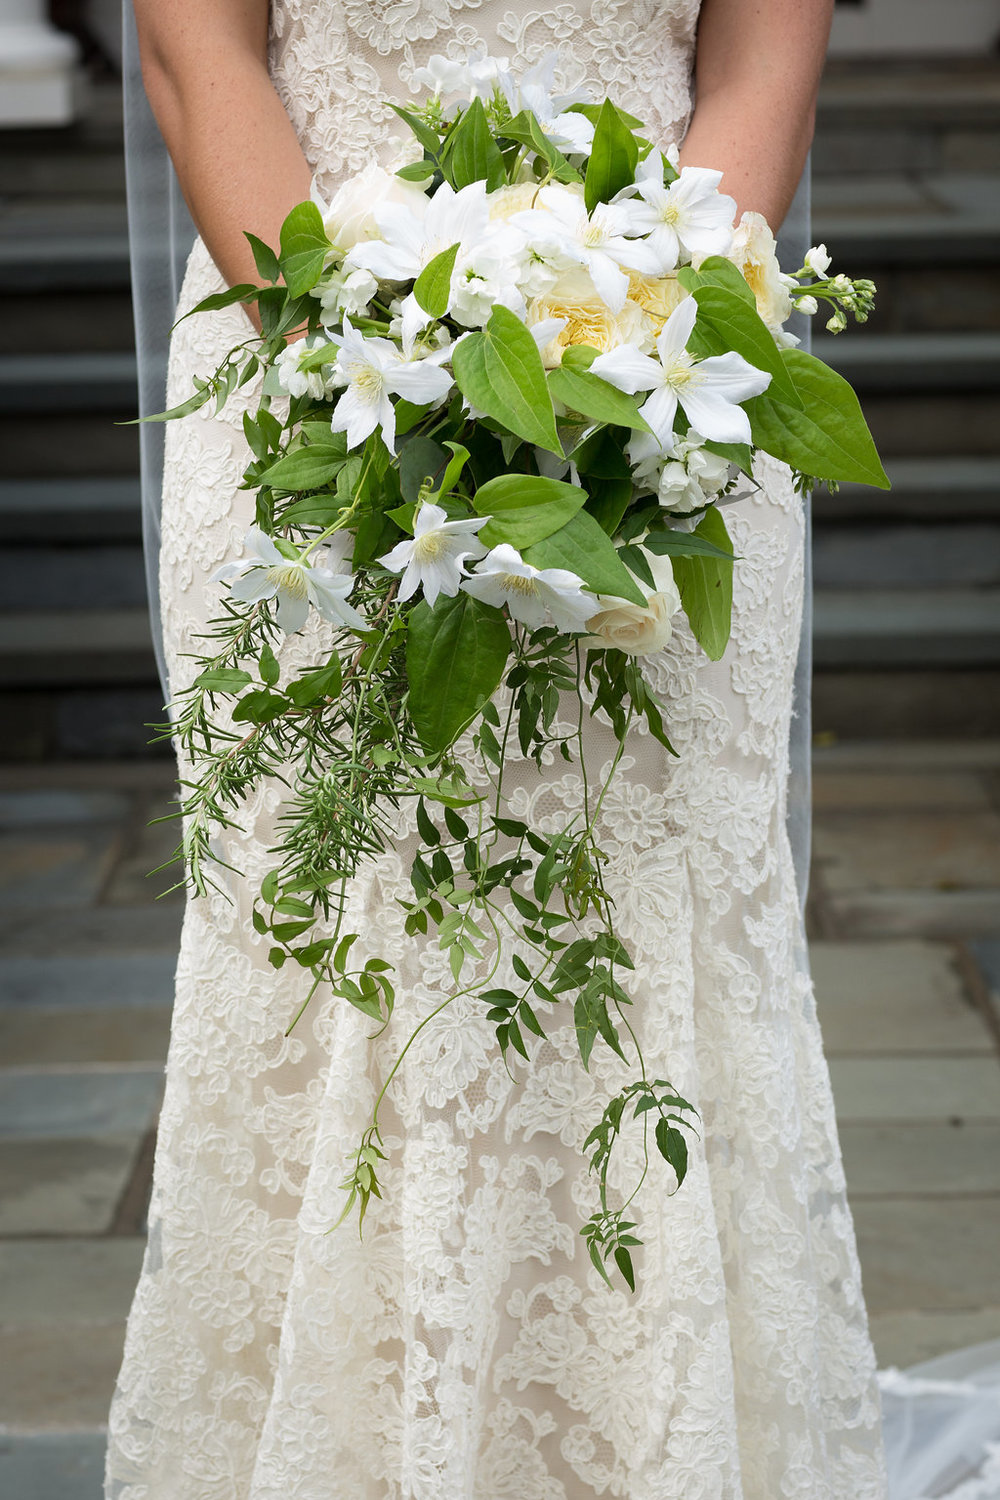 Summer wedding flowers in winston salem nc amy lynne originals the bride carried a cascading bouquet filled with garden roses clematis rosemary and jasmine the bridesmaids carried hand tied bouquets with pops of izmirmasajfo